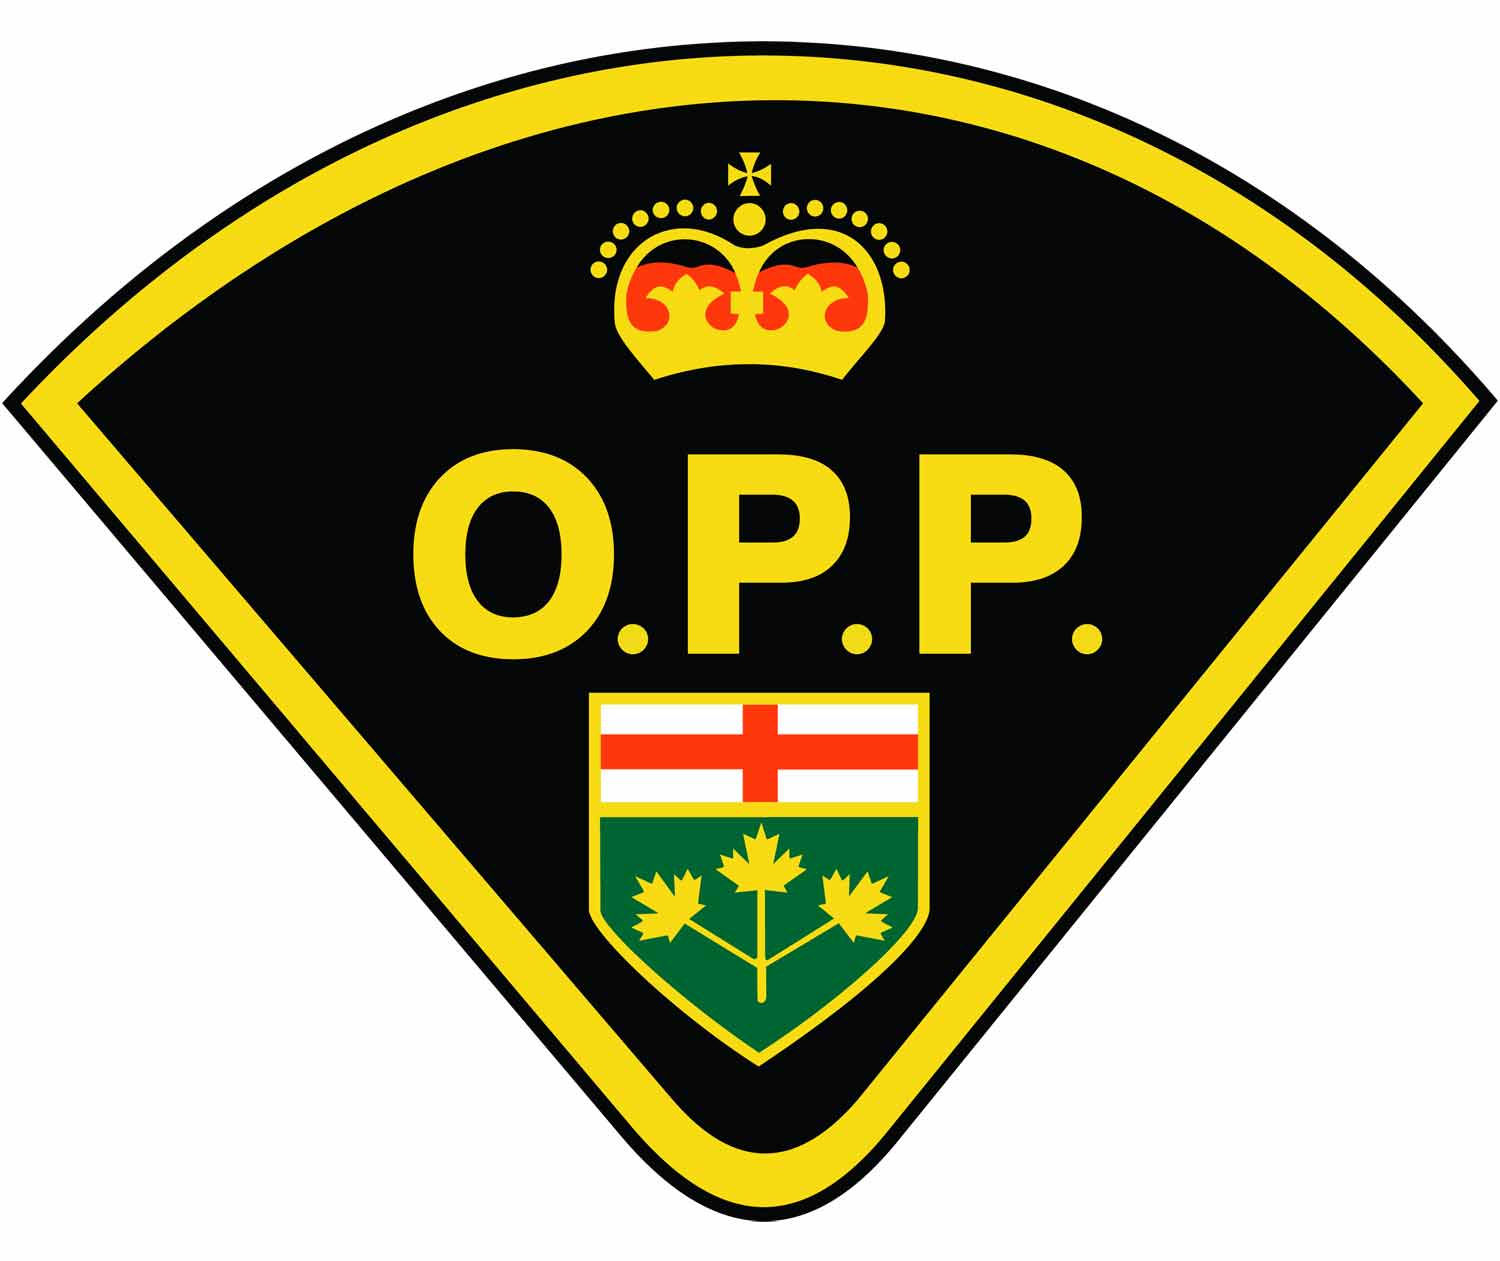 top traffic safety tips for parents ottawa public health john armit provincial constable ottawa provincial traffic detachment ontario provincial police